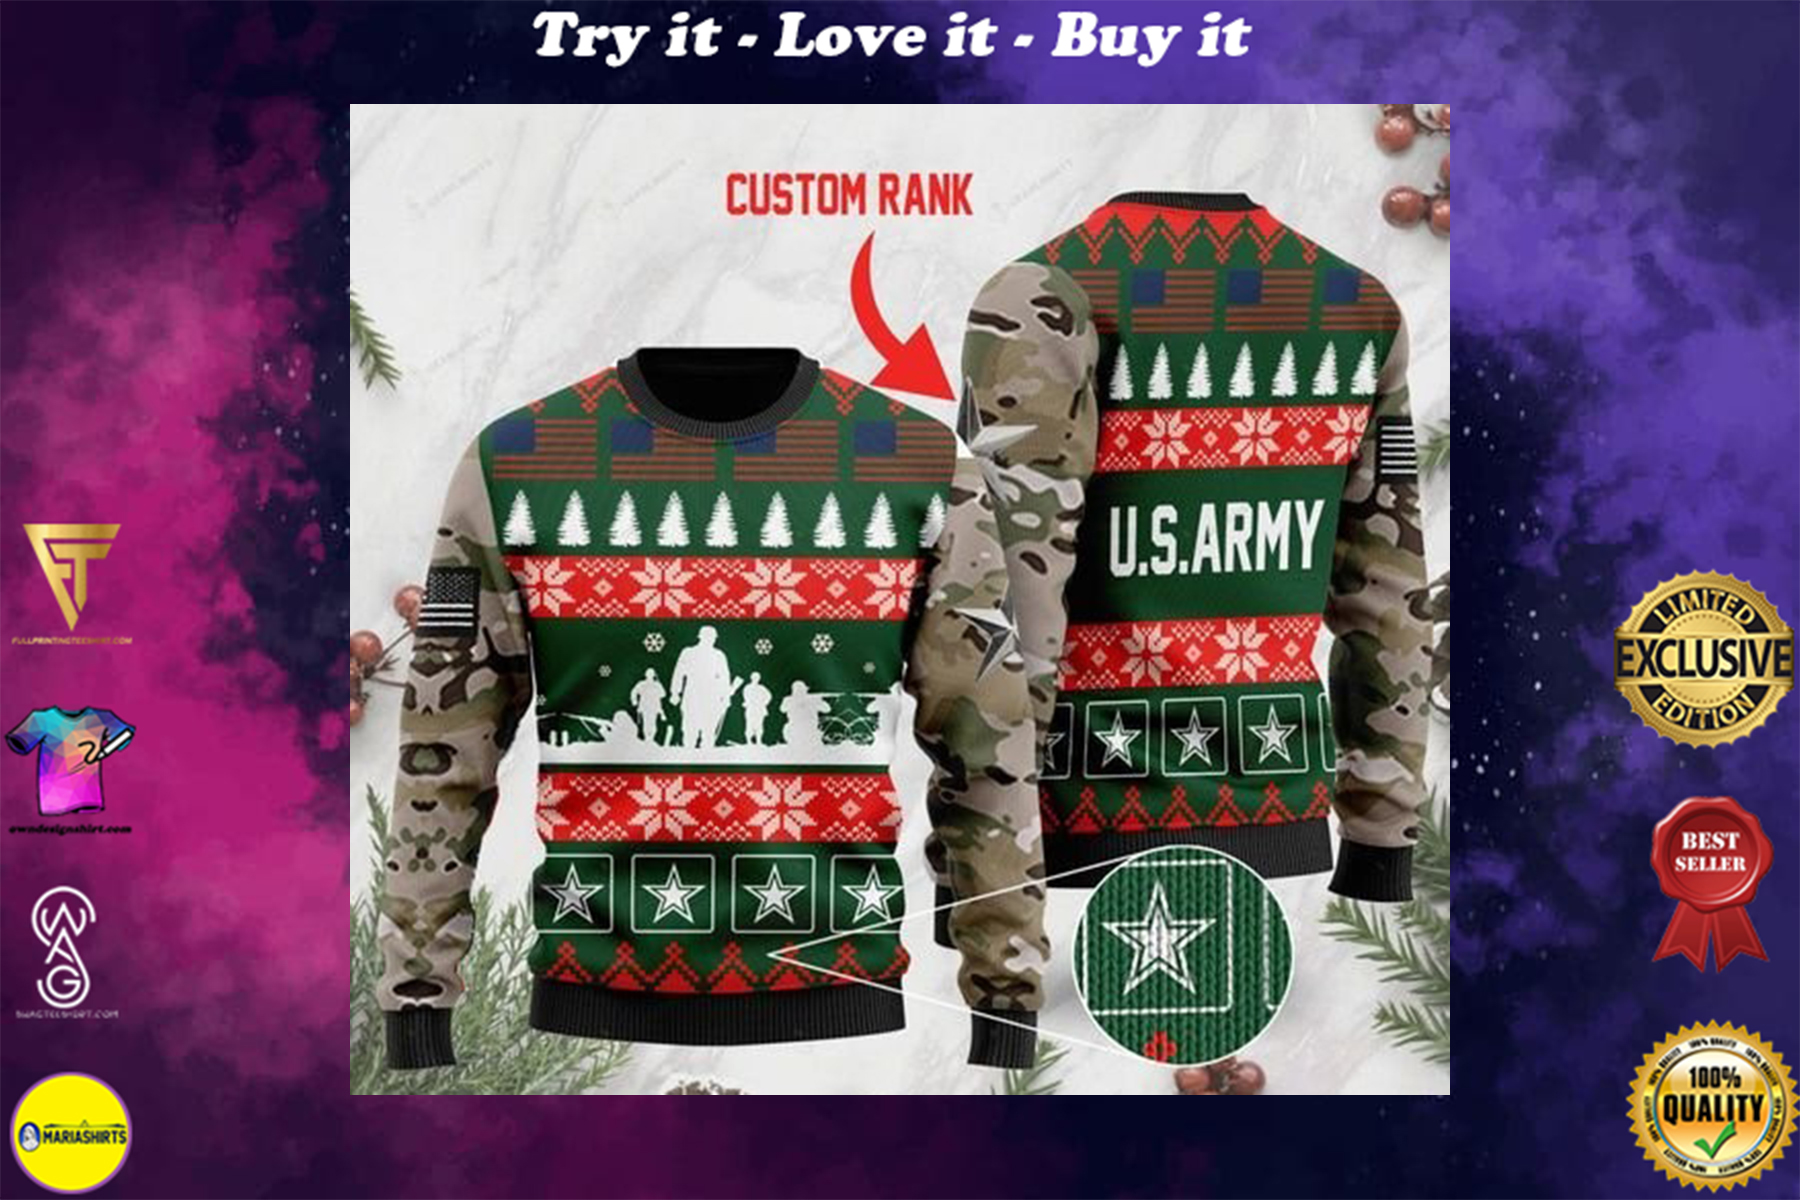 [highest selling] custom rank the united states army full printing ugly sweater - maria